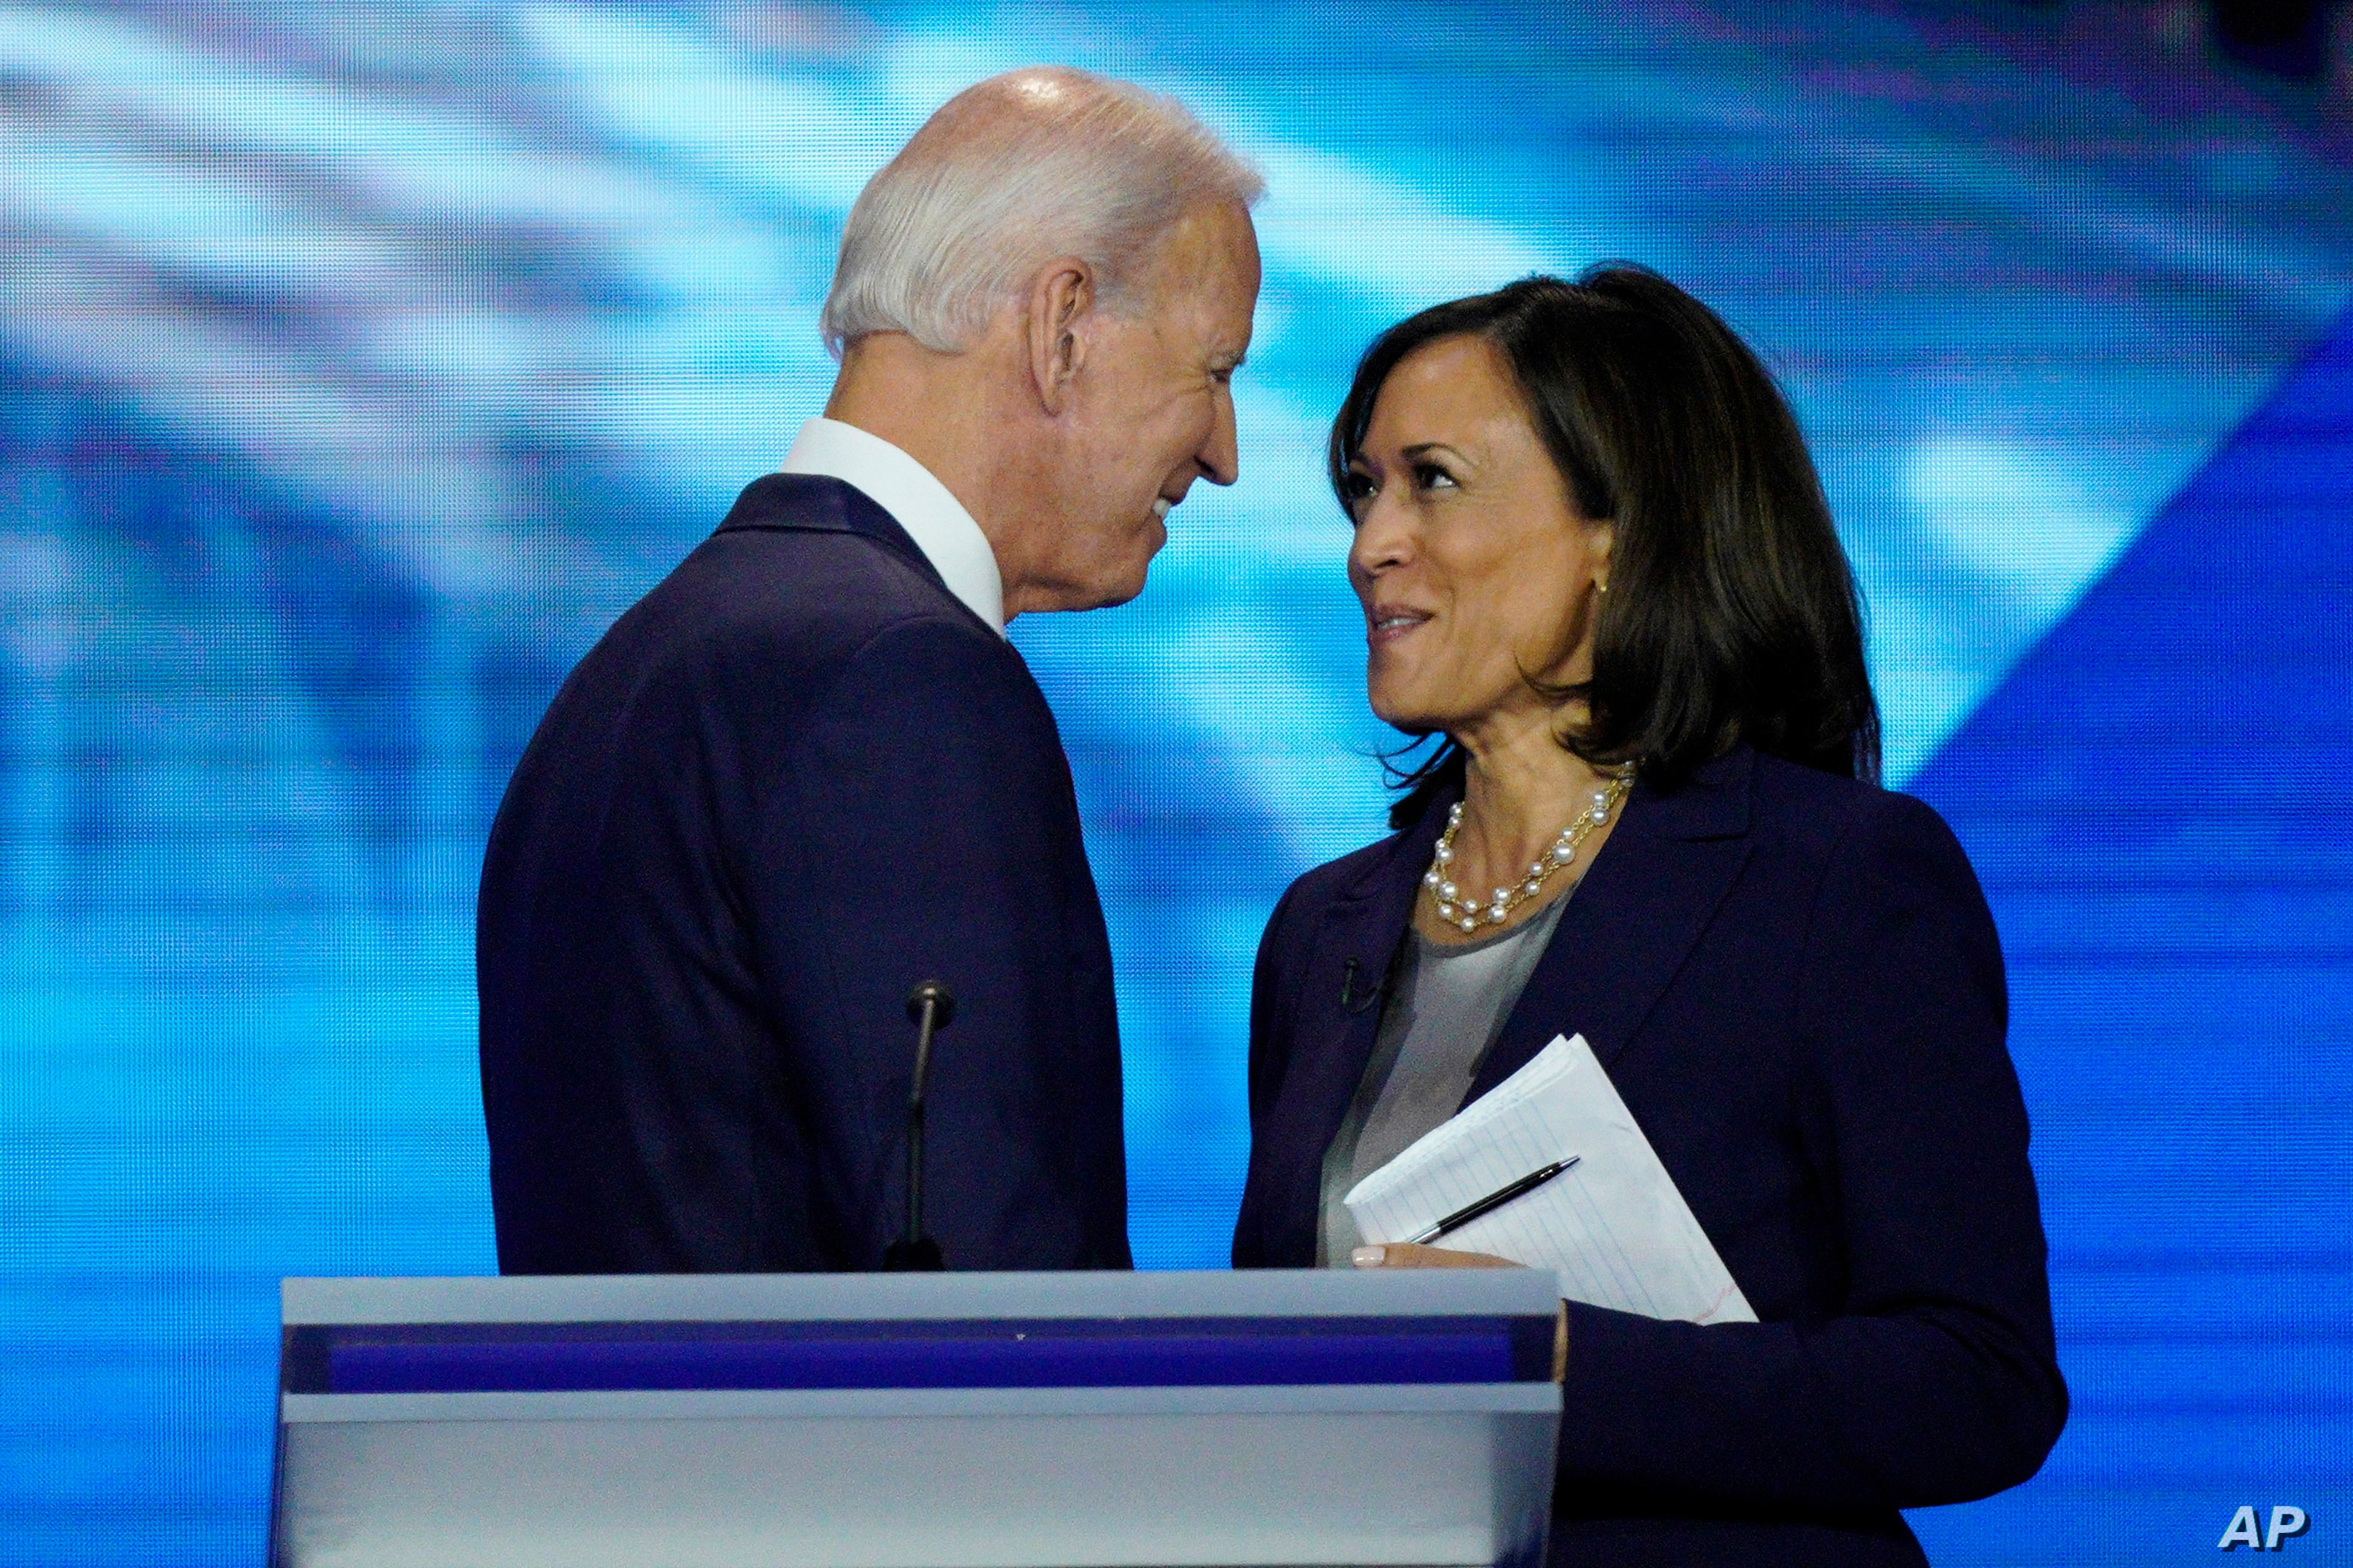 Biden, Harris to Make First Public Appearance Together as Running Mates |  Voice of America - English